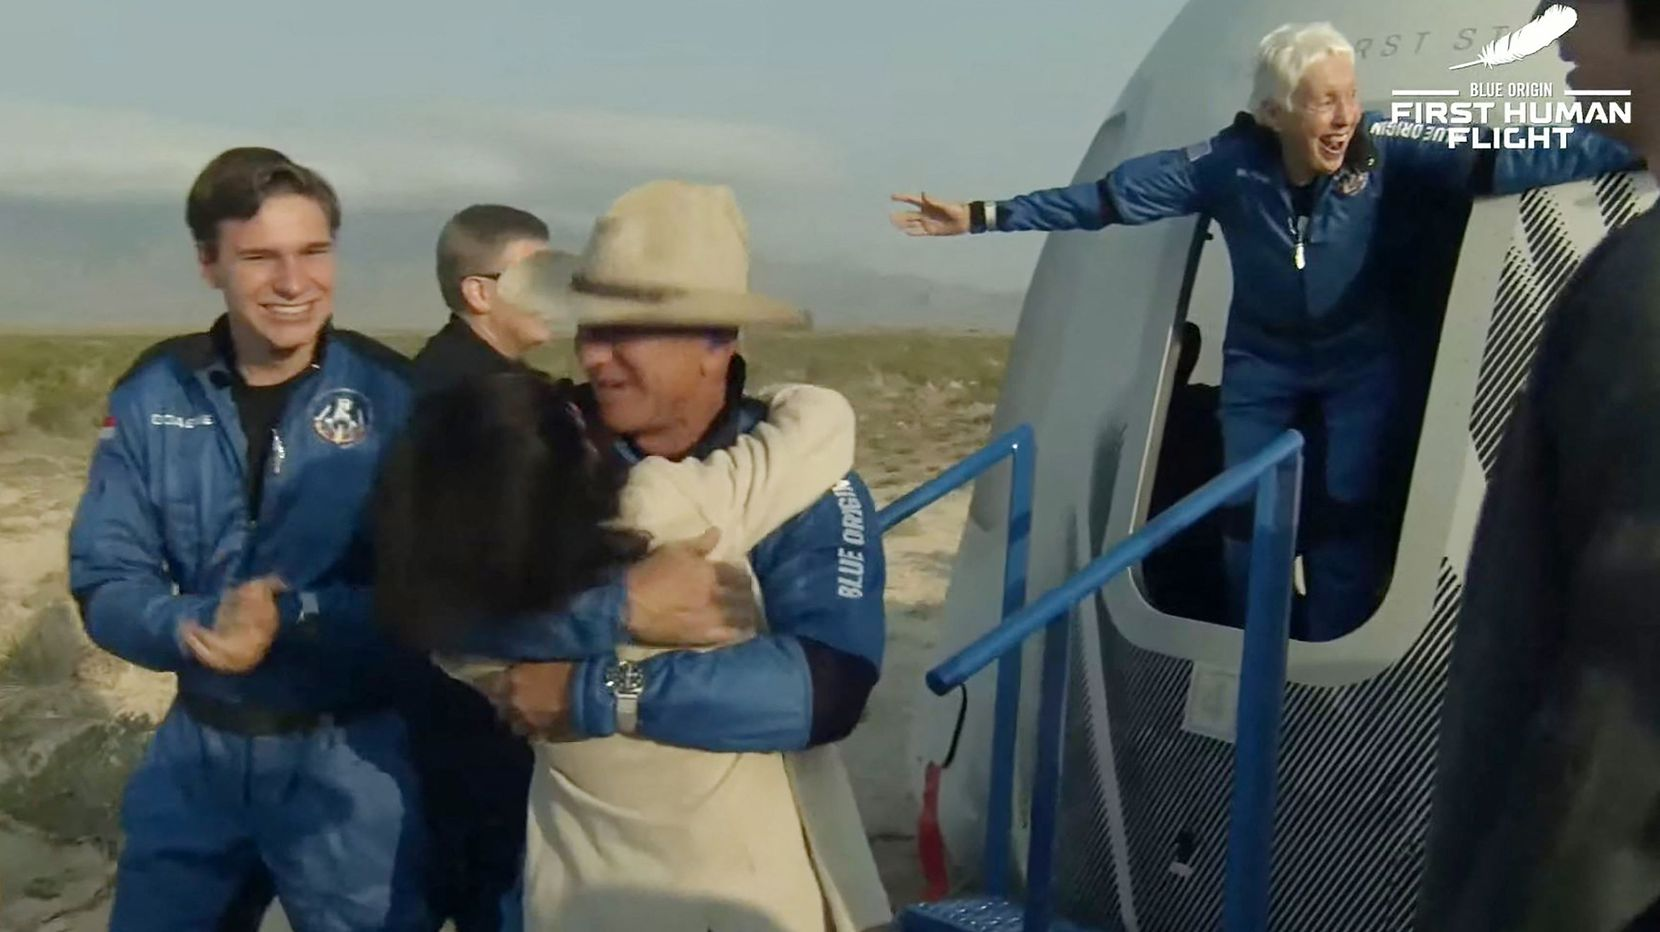 """This still image taken from video by Blue Origin shows Jeff Bezos(C), Wally Funk(R) and Oliver Daemen(L) after Blue Origin's reusable New Shepard craft capsule returned from space, safely landing on July 20, 2021, in Van Horn, Texas. - Blue Origin's first crewed mission is an 11-minute flight from west Texas to an altitude of 65 miles (106kms), and back again, to coincide with the 52nd anniversary of the first Moon landing. (Photo by Handout / BLUE ORIGIN / AFP) / RESTRICTED TO EDITORIAL USE - MANDATORY CREDIT """"AFP PHOTO / Blue Origin"""" - NO MARKETING - NO ADVERTISING CAMPAIGNS - DISTRIBUTED AS A SERVICE TO CLIENTS (Photo by HANDOUT/BLUE ORIGIN/AFP via Getty Images)"""